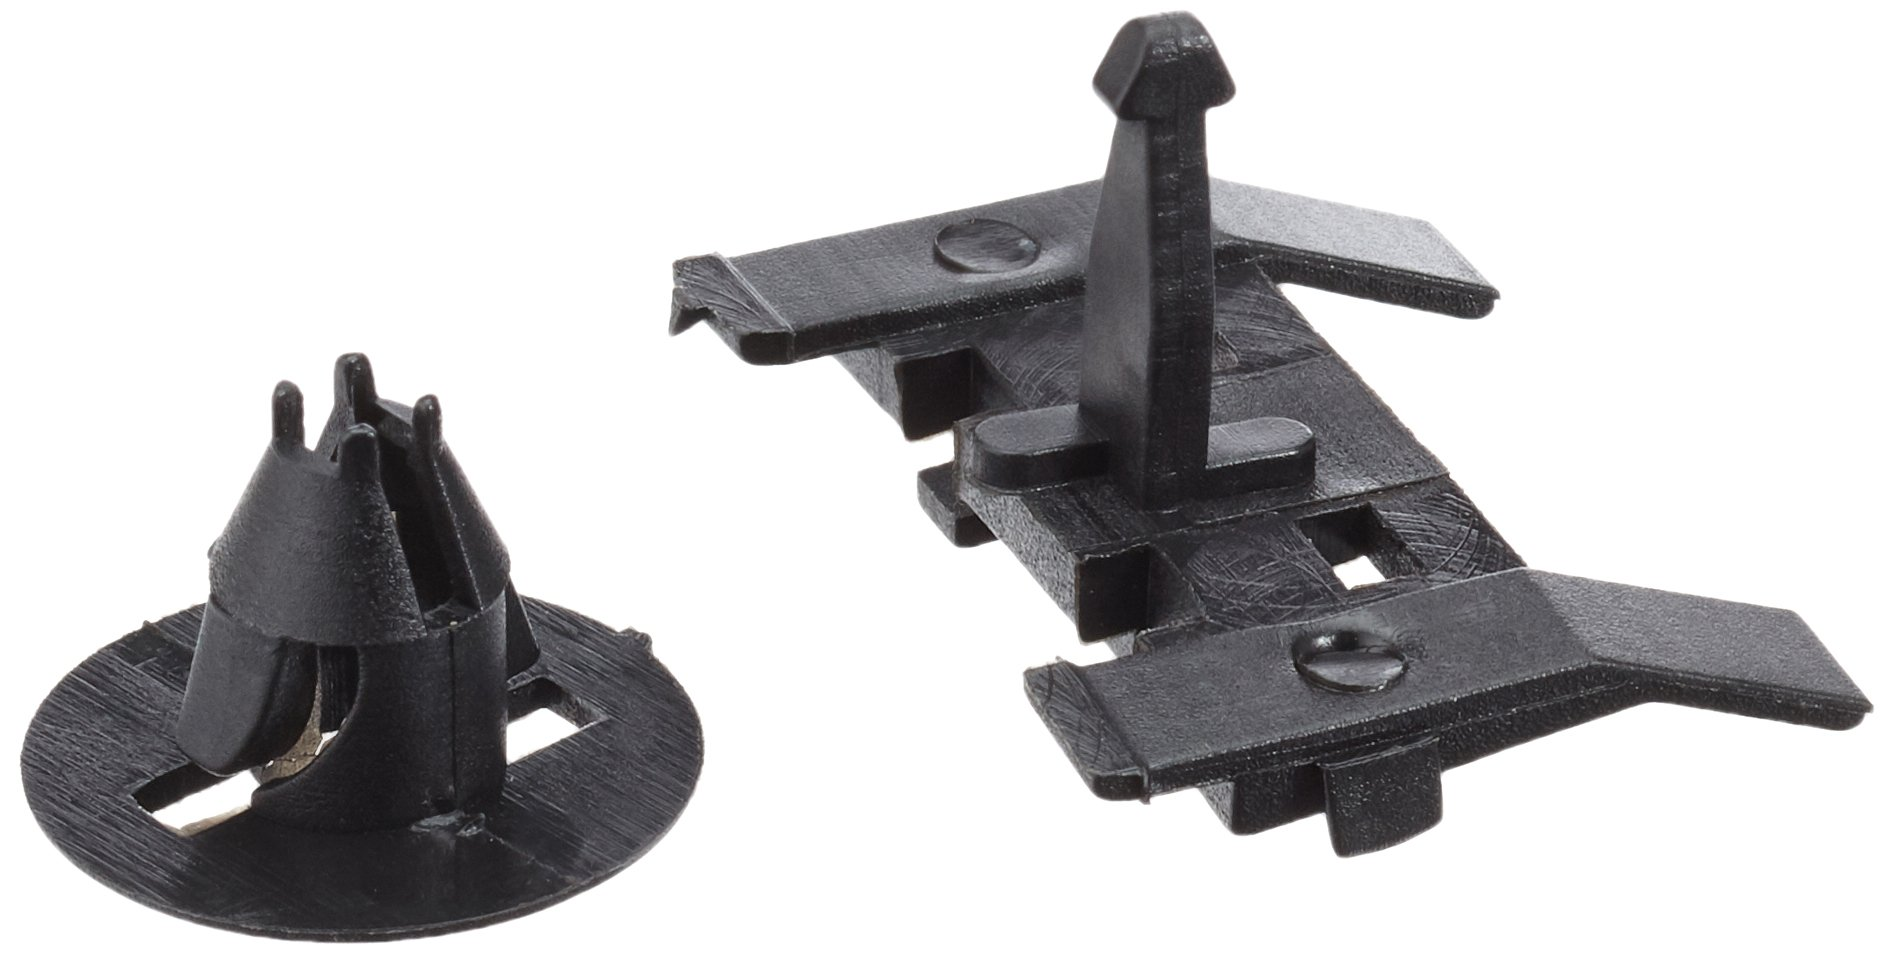 SW-Stahl S80359Connection Rubber for Side Strip, Pack of 10)